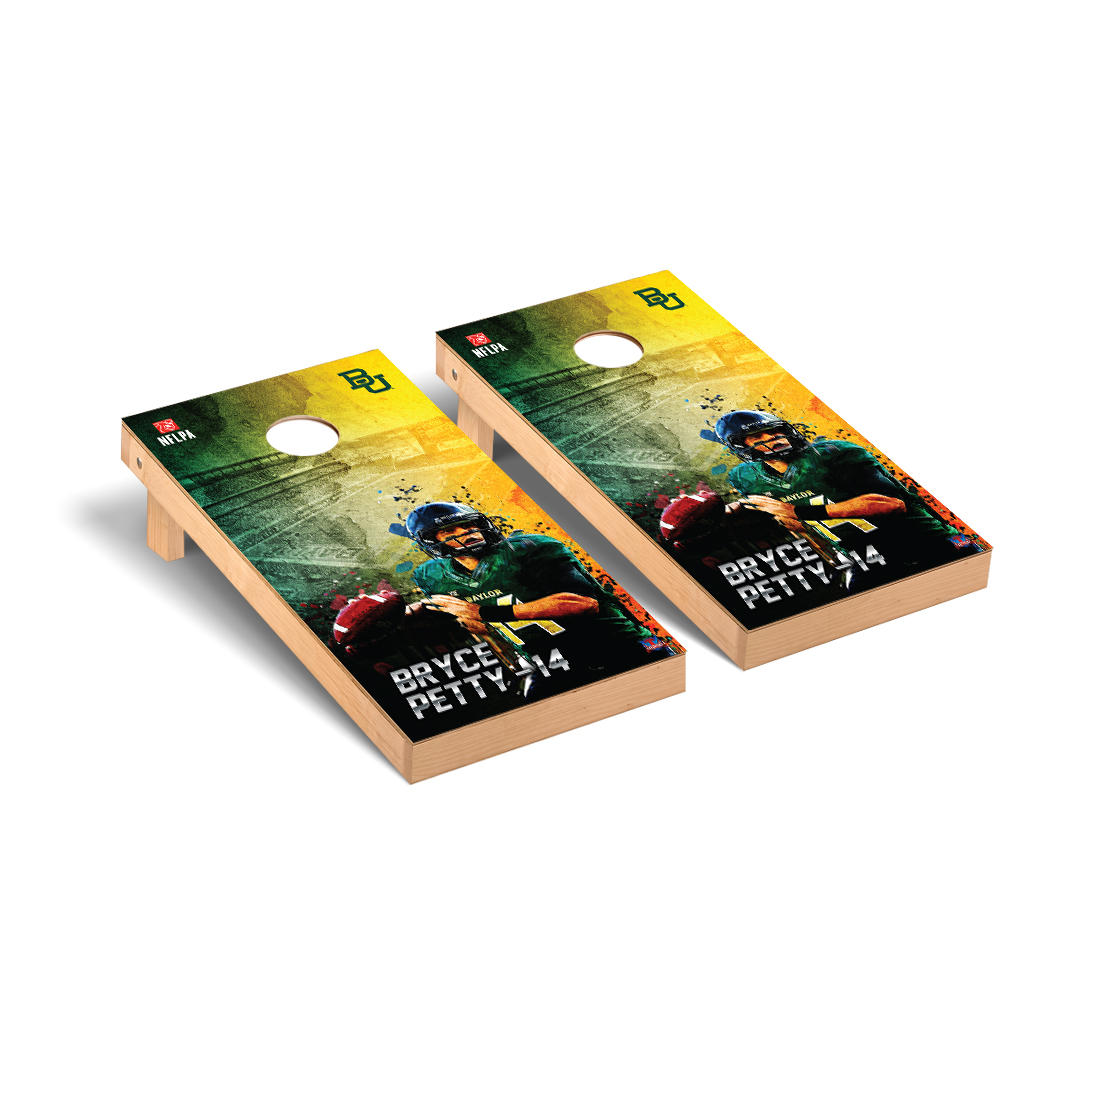 Baylor Bears Cornhole Game Set Bryce Petty 14 NFLPA Version